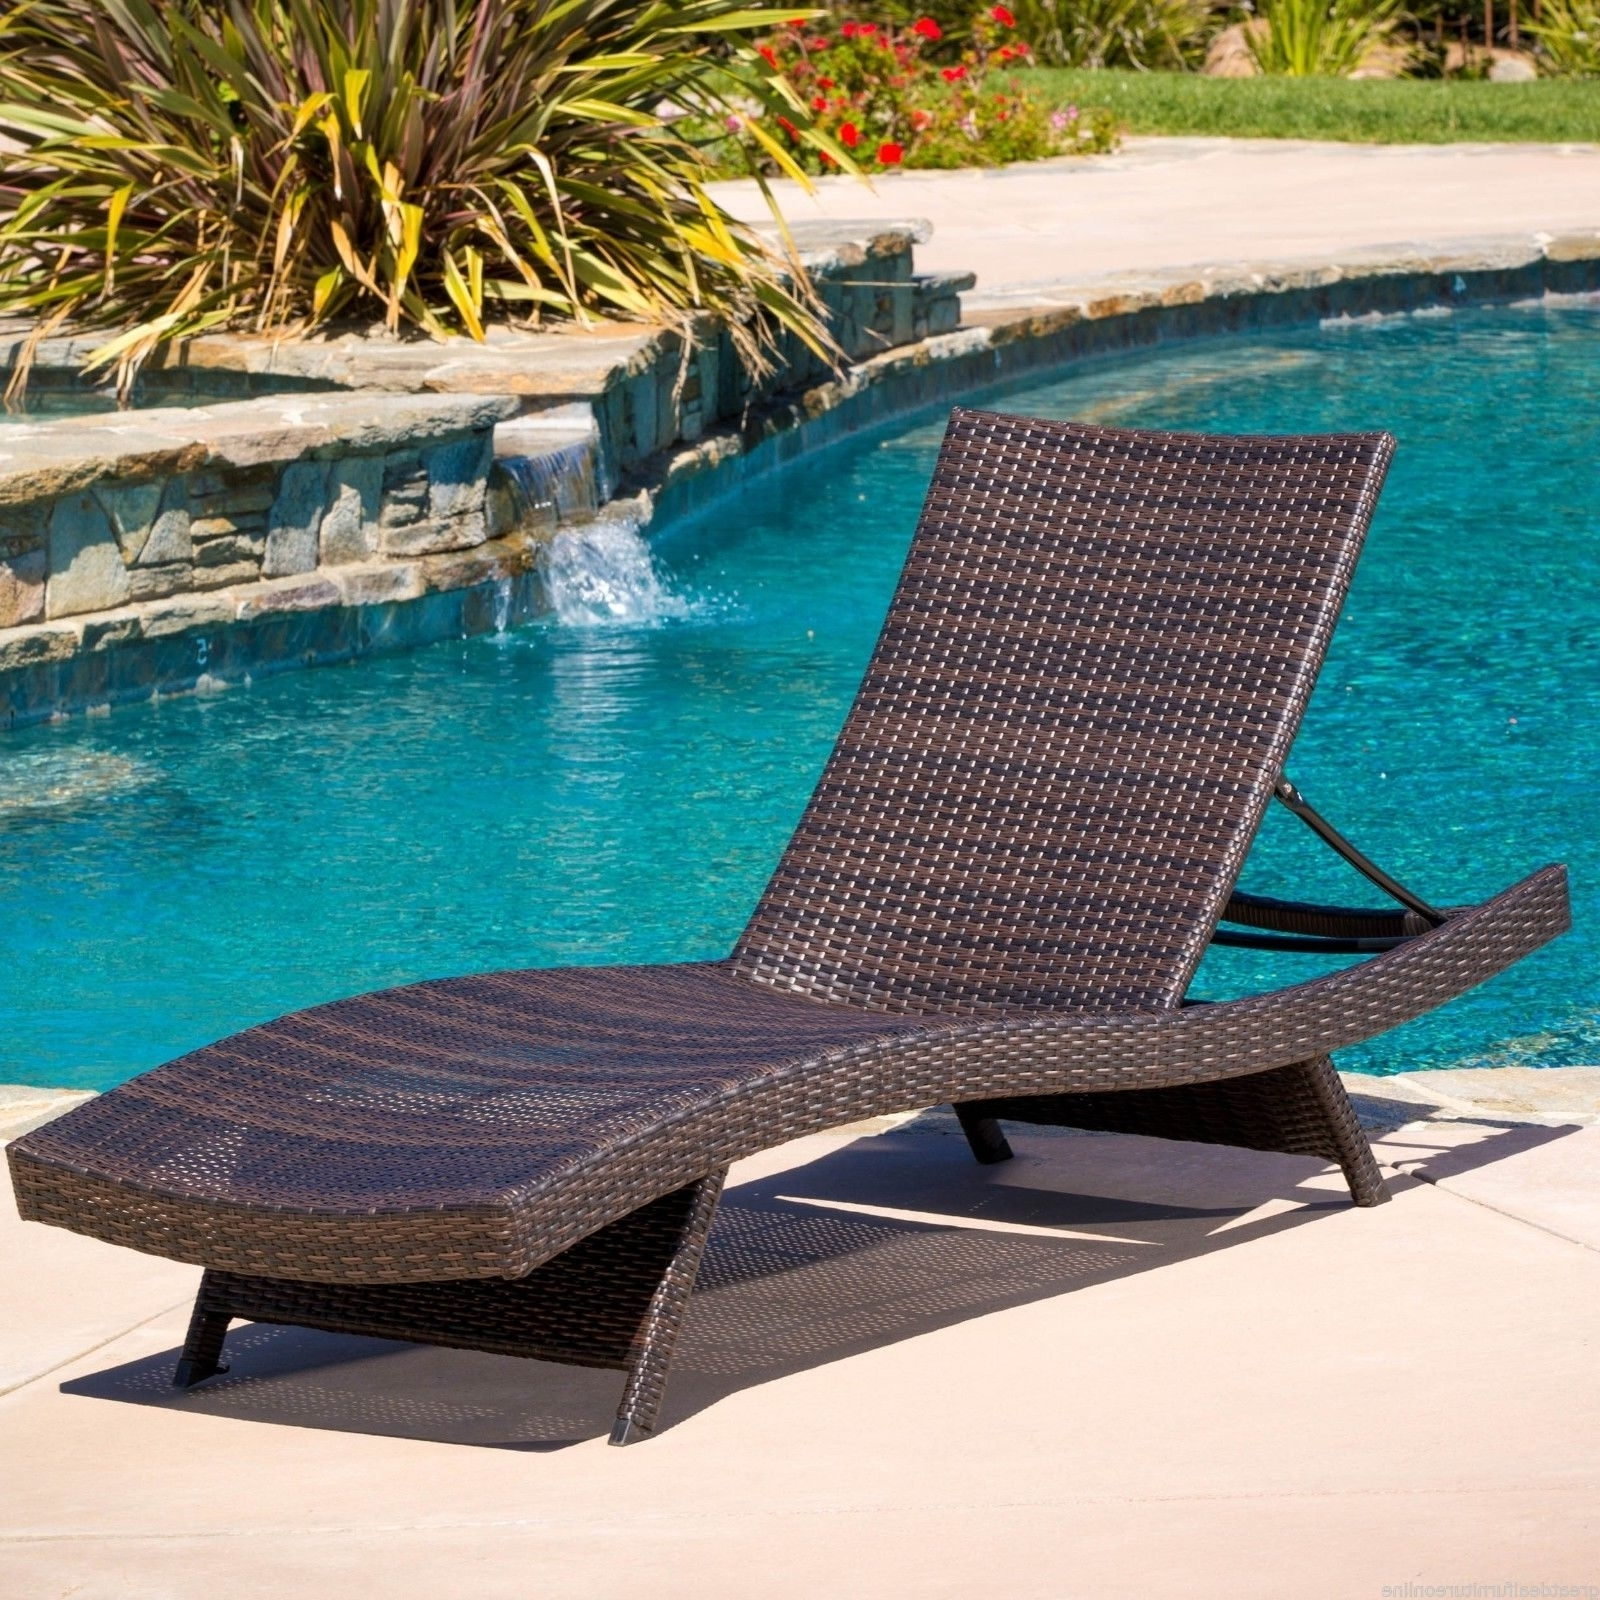 In Water Pool Lounge Chairs You Ll Love In 2021 Visualhunt